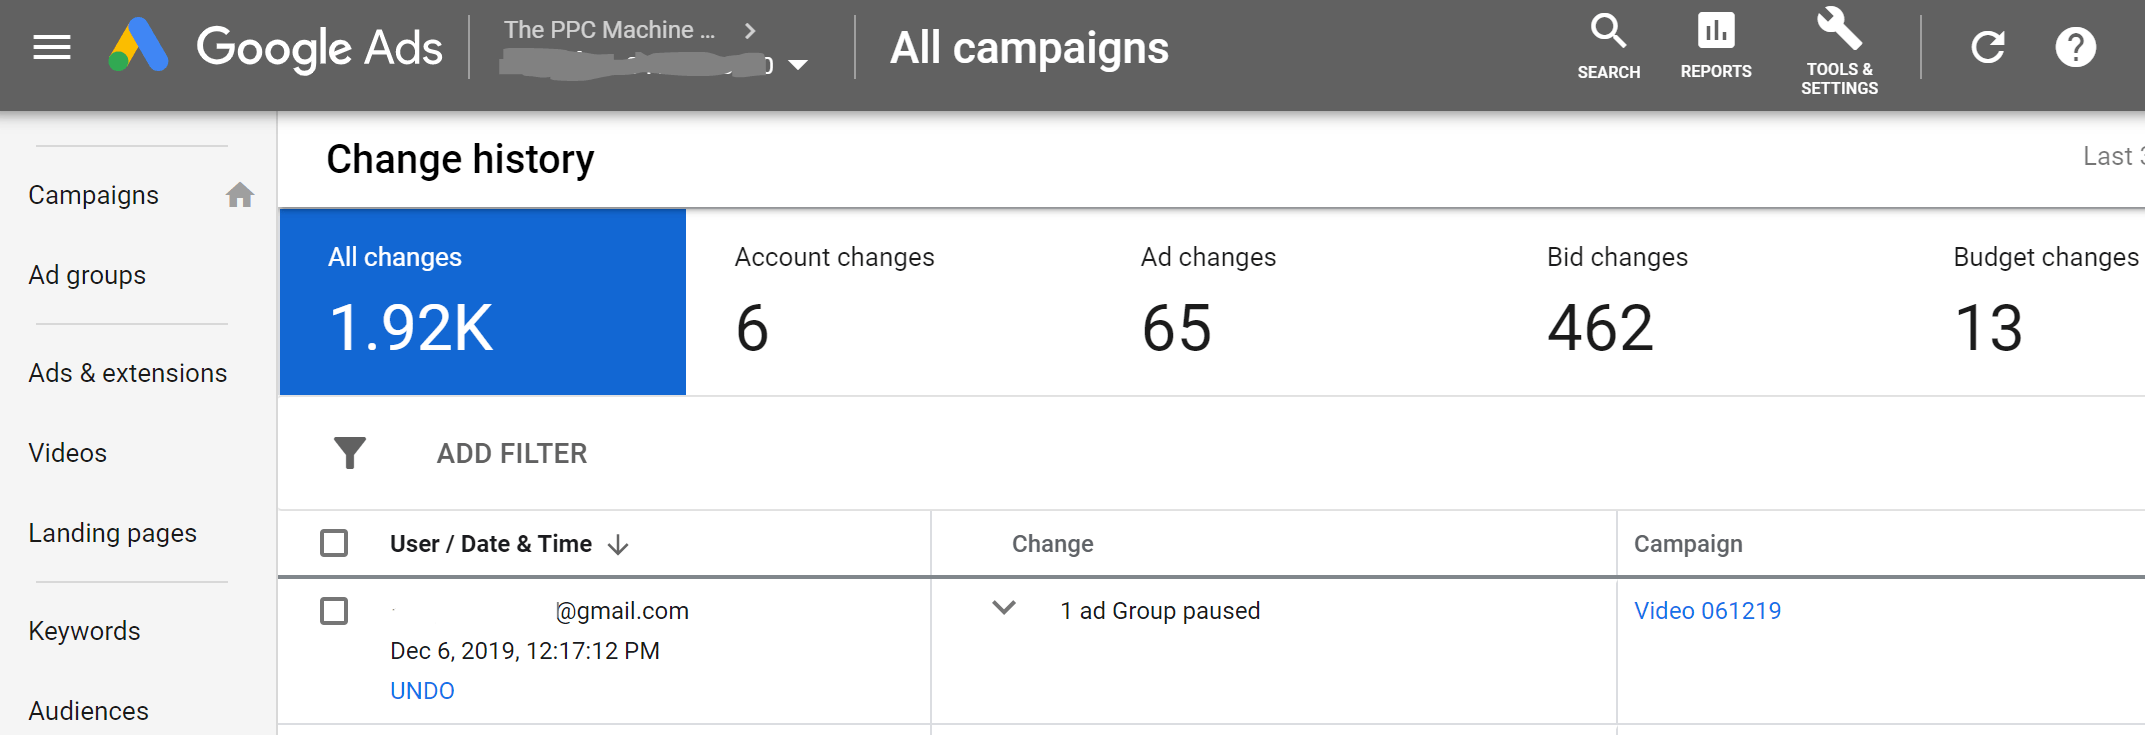 Google Ads contains a comprehensive change history report